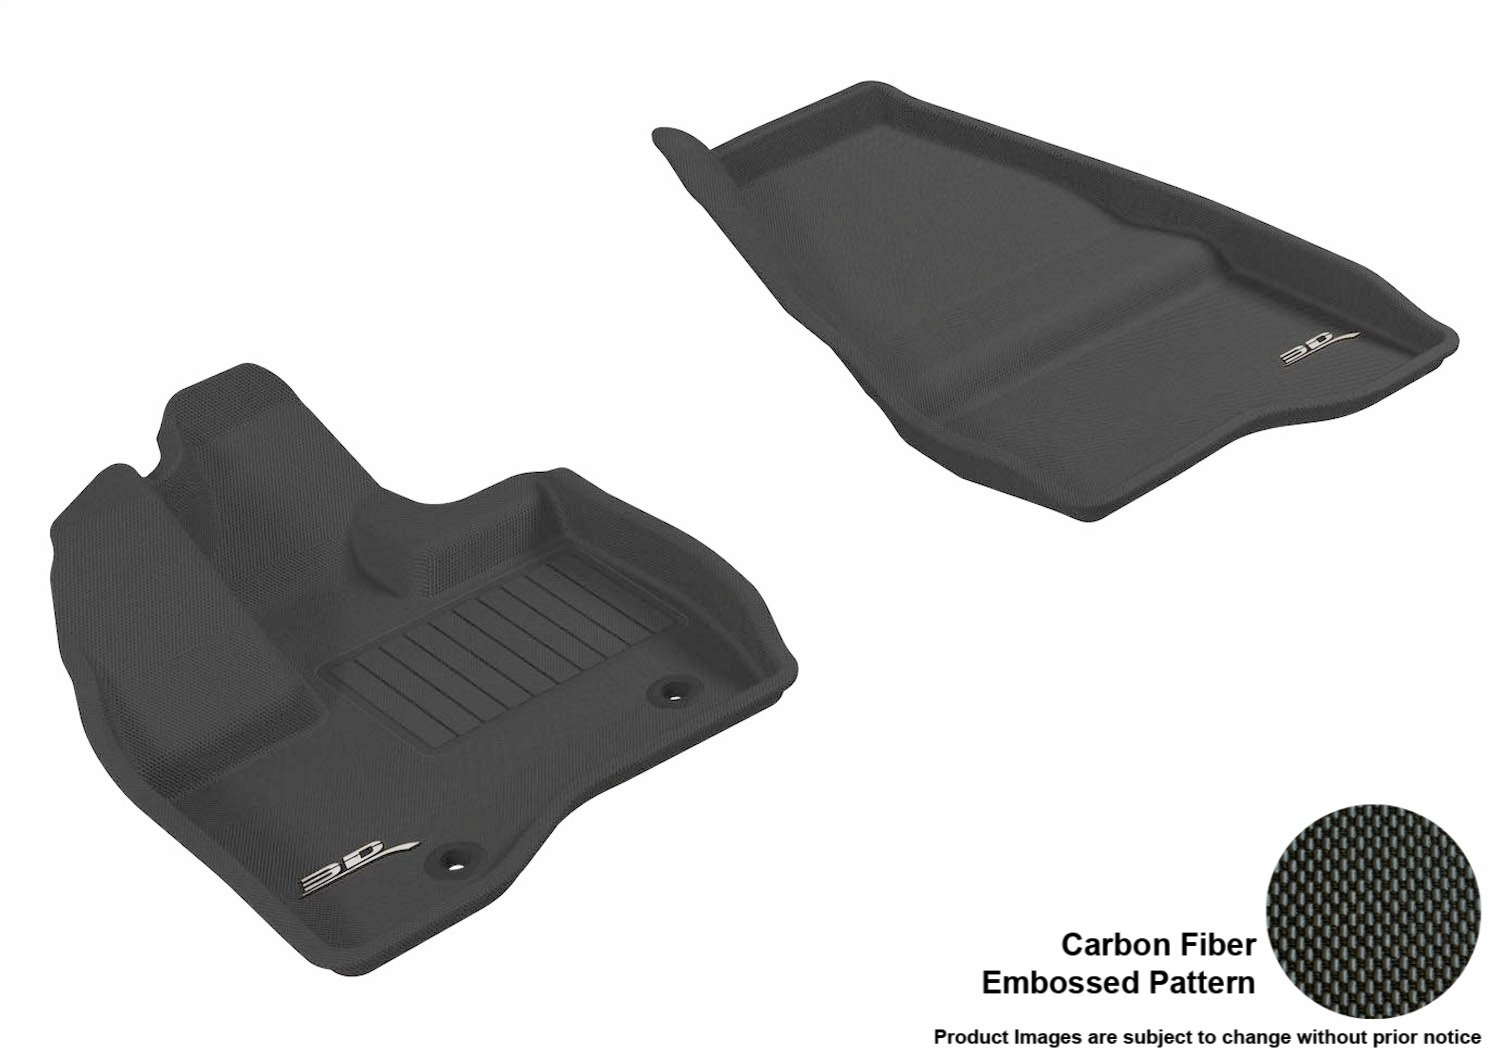 3D MAXpider Front Row Custom Fit All-Weather Floor Mat for Select Ford Explorer Models Black Kagu Rubber L1FR03611509